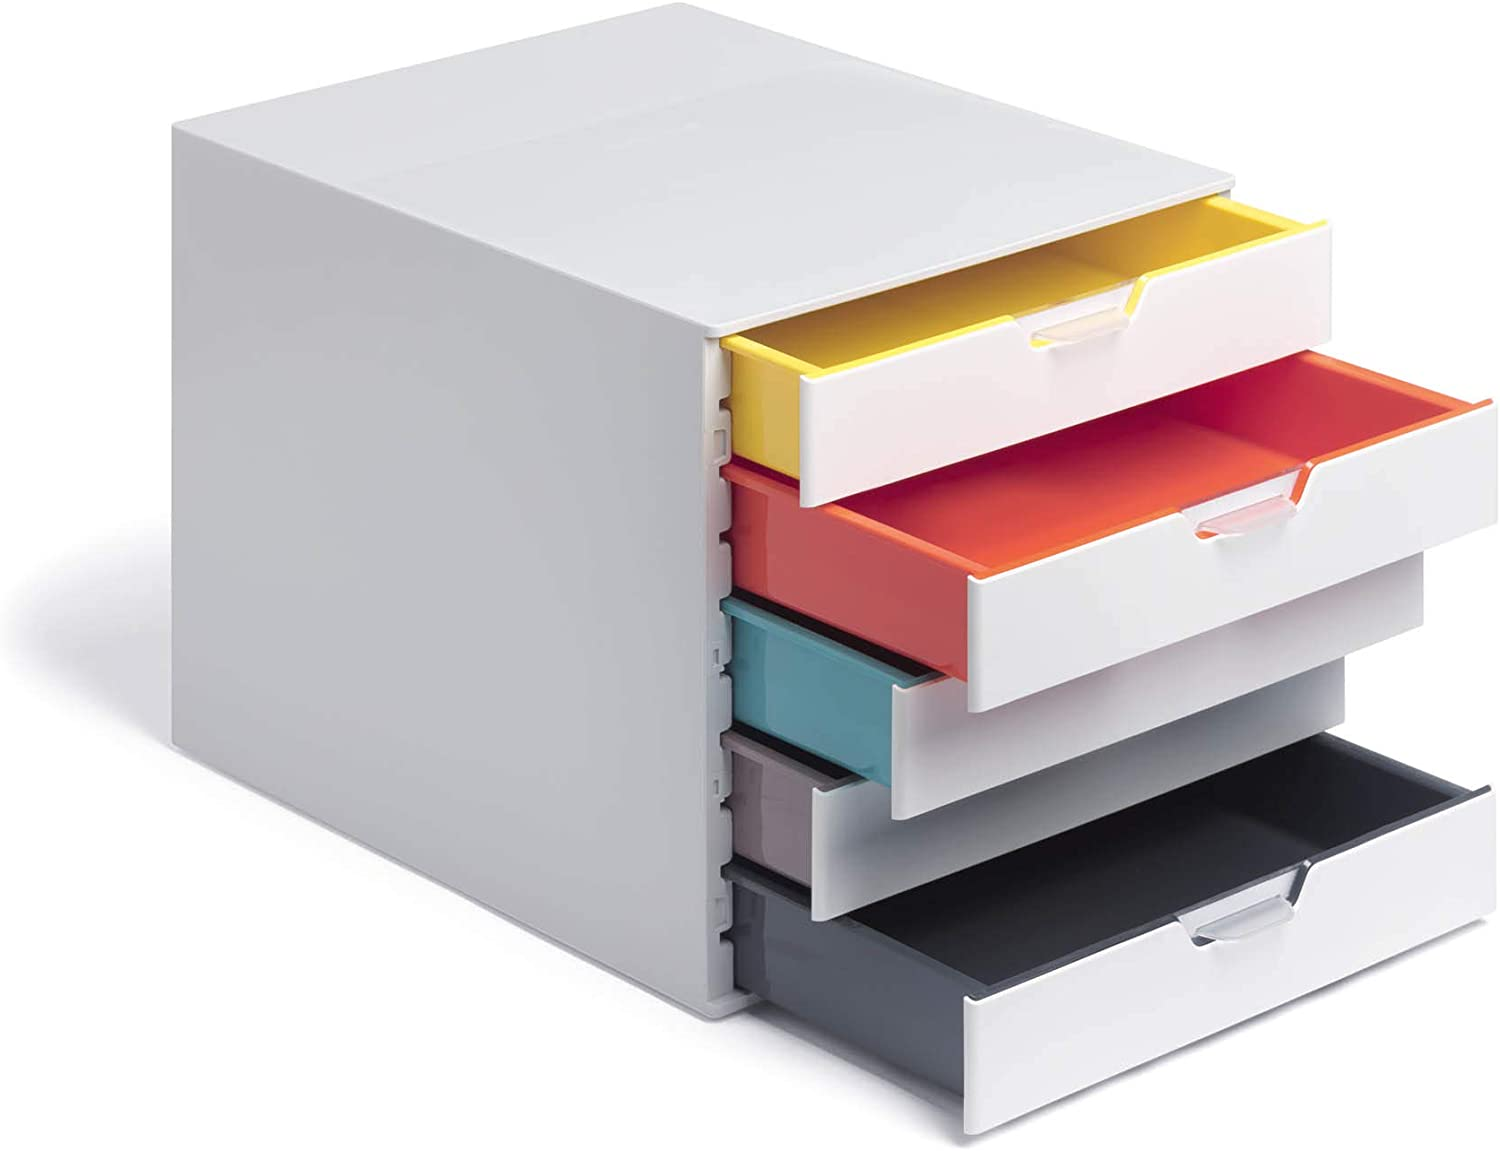 "DURABLE Desktop Drawer Organizer (VARICOLOR Mix 5 Compartments with Removable Labels) 11"" w x 14"" d x 11.375"" h, White & Multicolored (762527)"